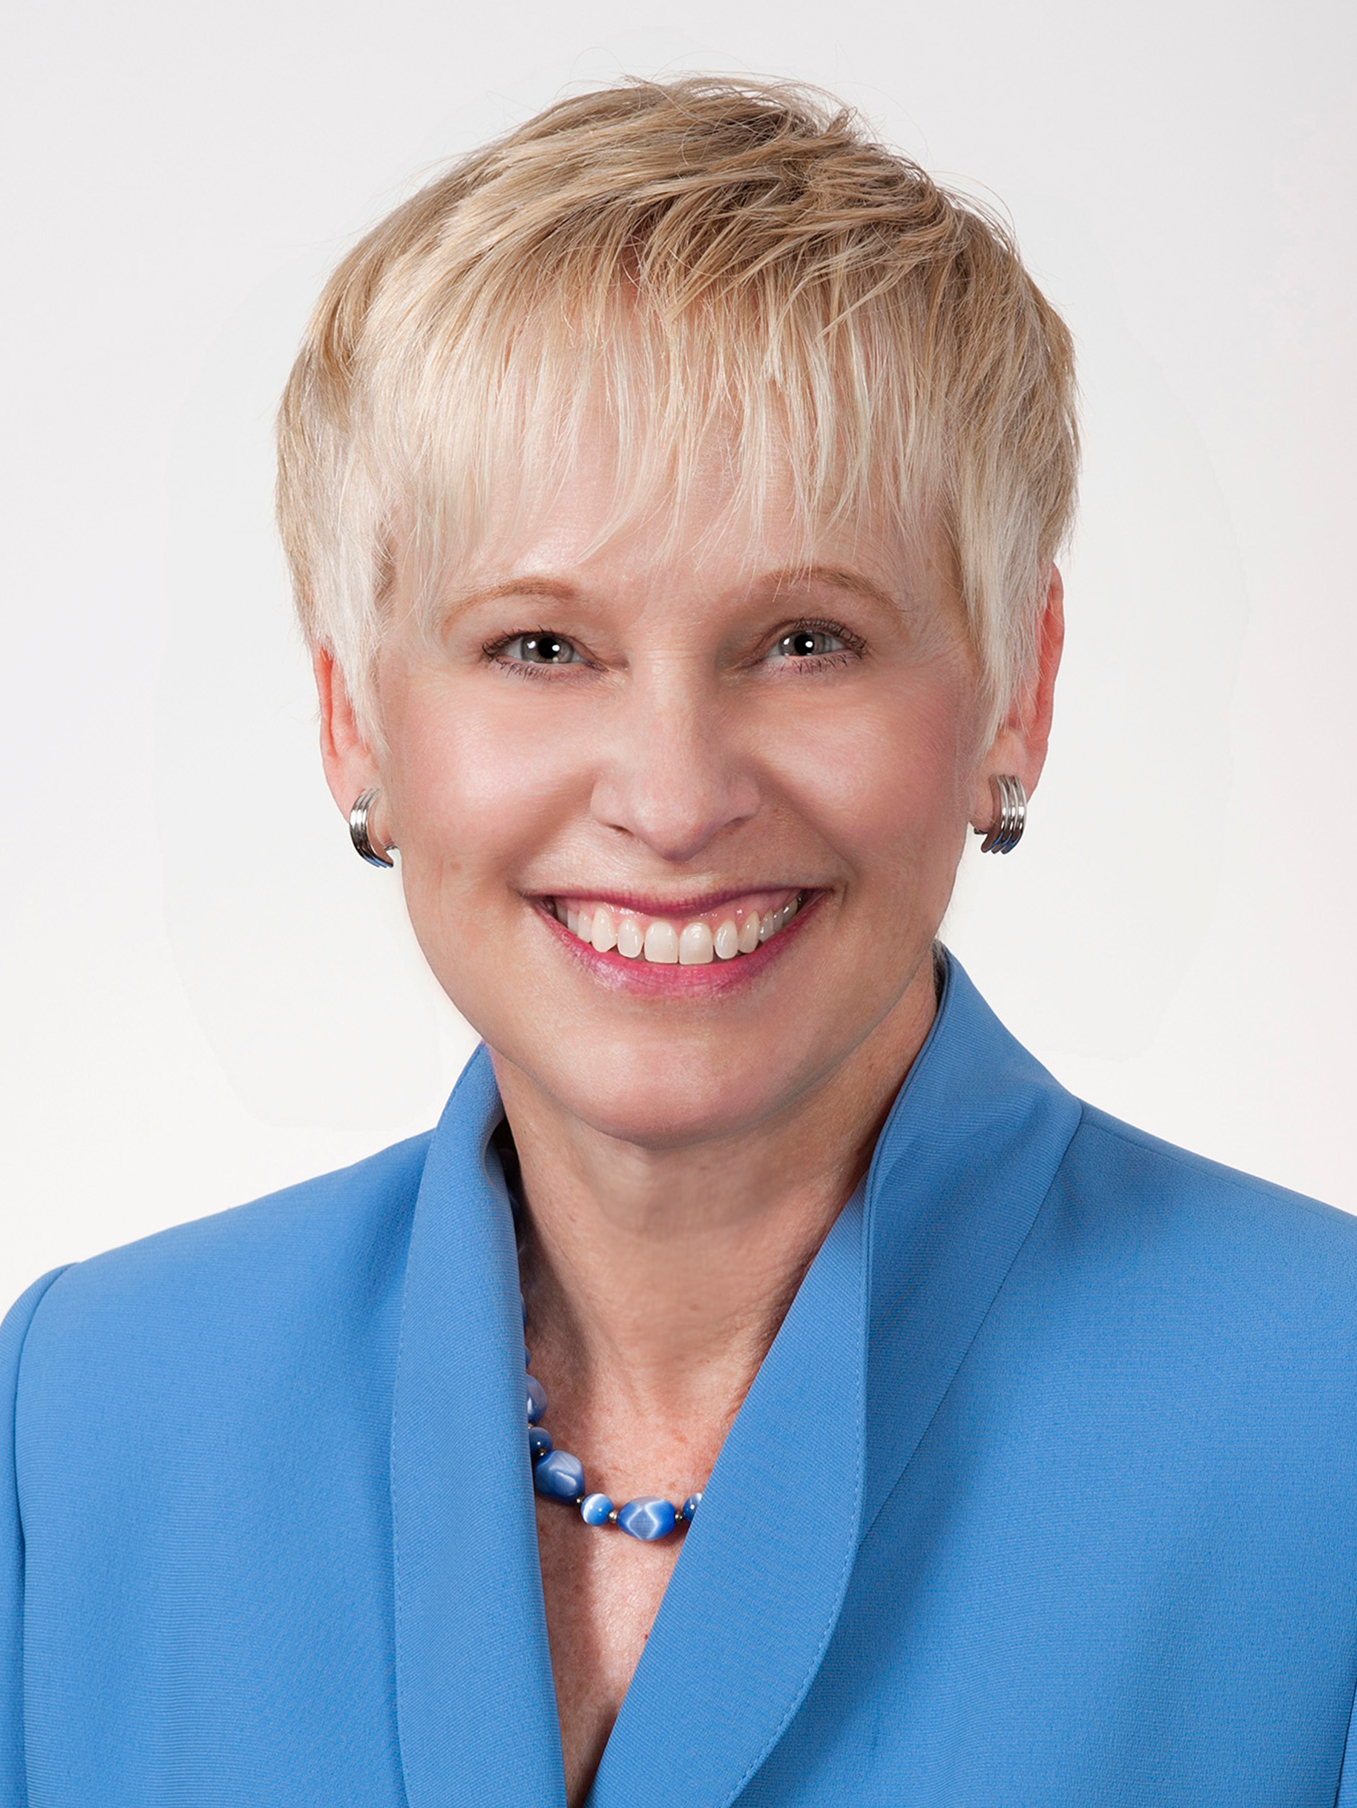 Linda S. Brown, Partner, Co-founder, Director of Operations, and CCO of Day Hagan Mutual Funds in Sarasota, FL.